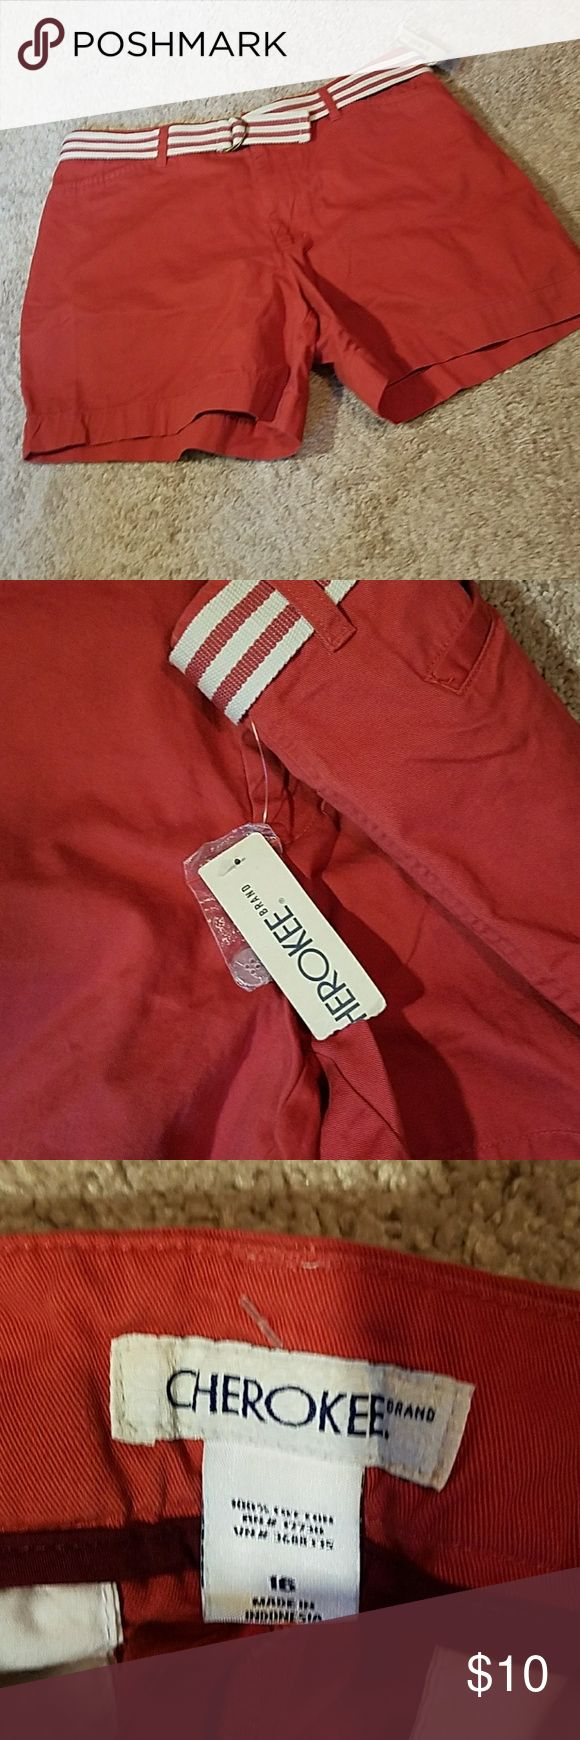 Cherokee brand  Coral shorts size 16 100% cotton Cherokee brand  Coral shorts size 16 100% cotton . In excellent NEW condition NET. Belt is included. Cherokee Shorts